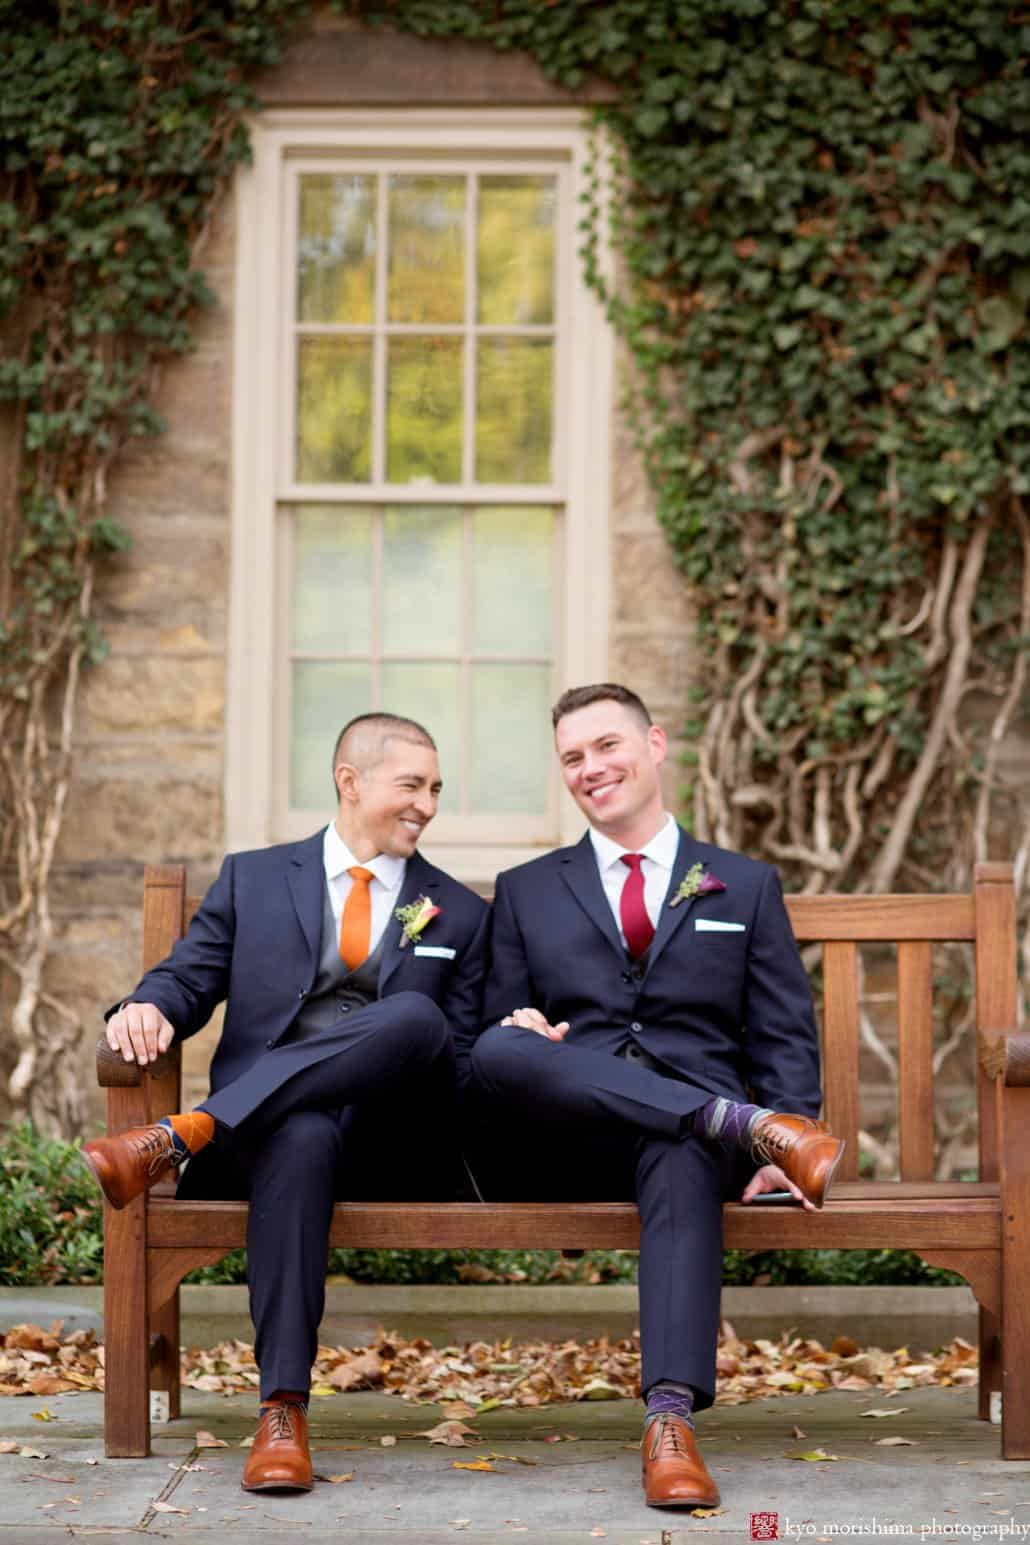 Princeton same sex marriage wedding portrait on a park bench framed with ivy